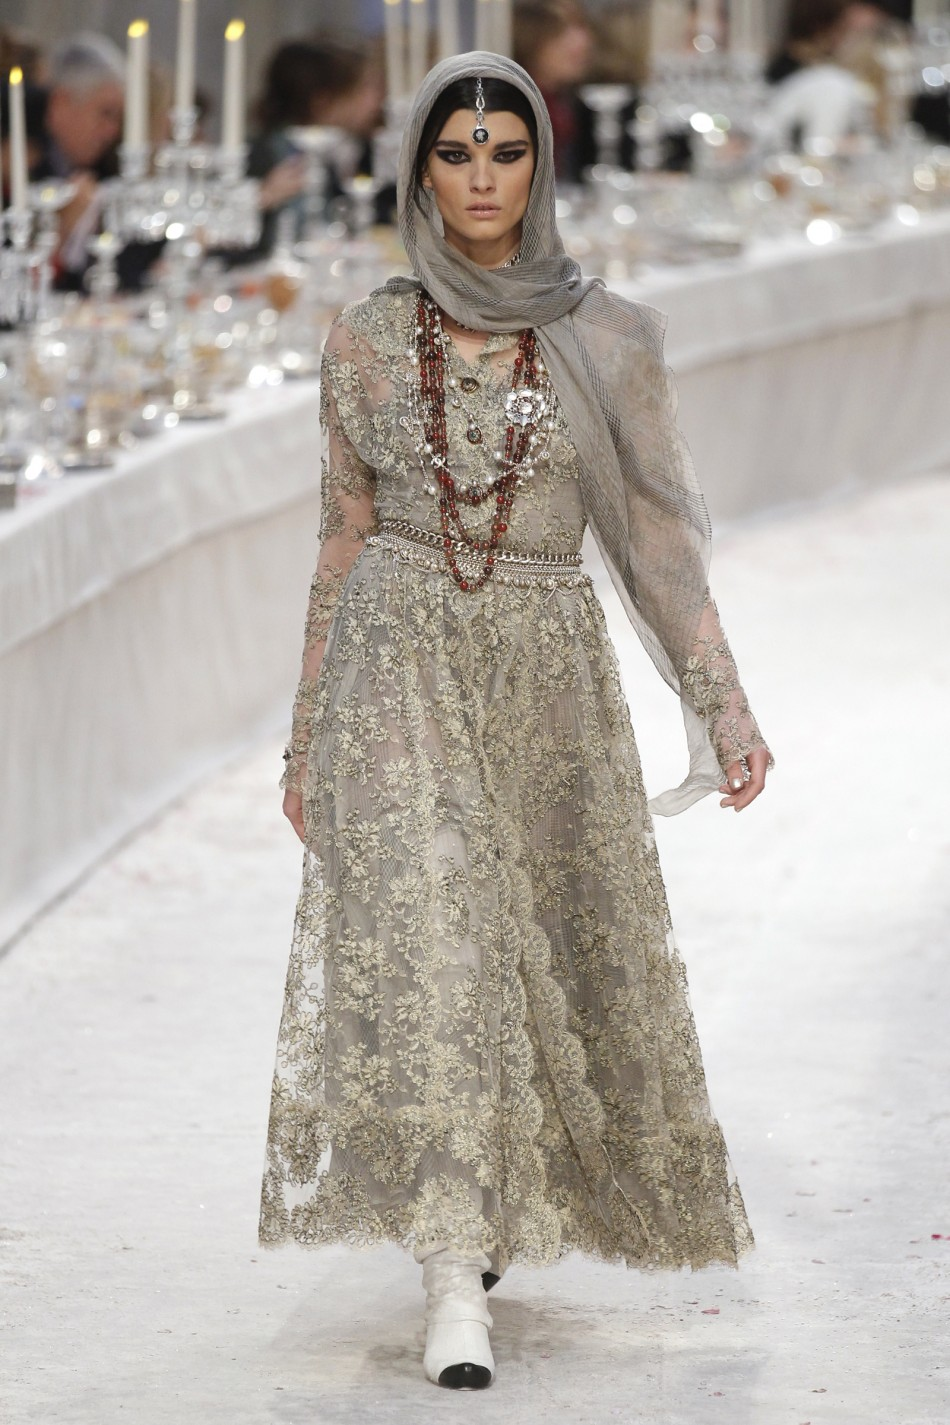 karl lagerfeld hosts india inspired couture show for